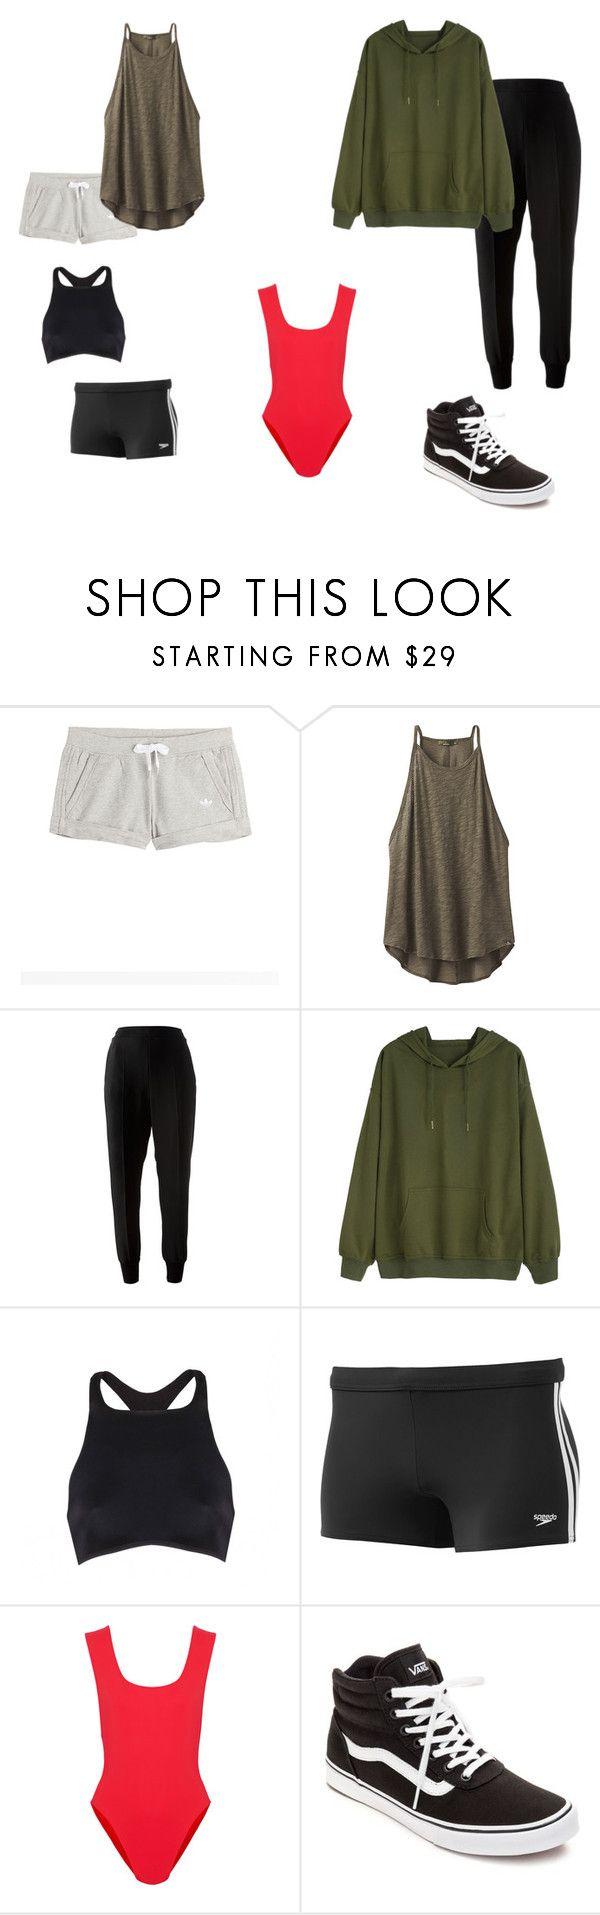 """Survivor: The Type Of Clothes To Take With You(WOMAN)"" by sr-for-the-world on Polyvore featuring adidas Originals, prAna, STELLA McCARTNEY, UrchinDeep, Speedo, Araks, Vans, Greece, survivor and realityTV"